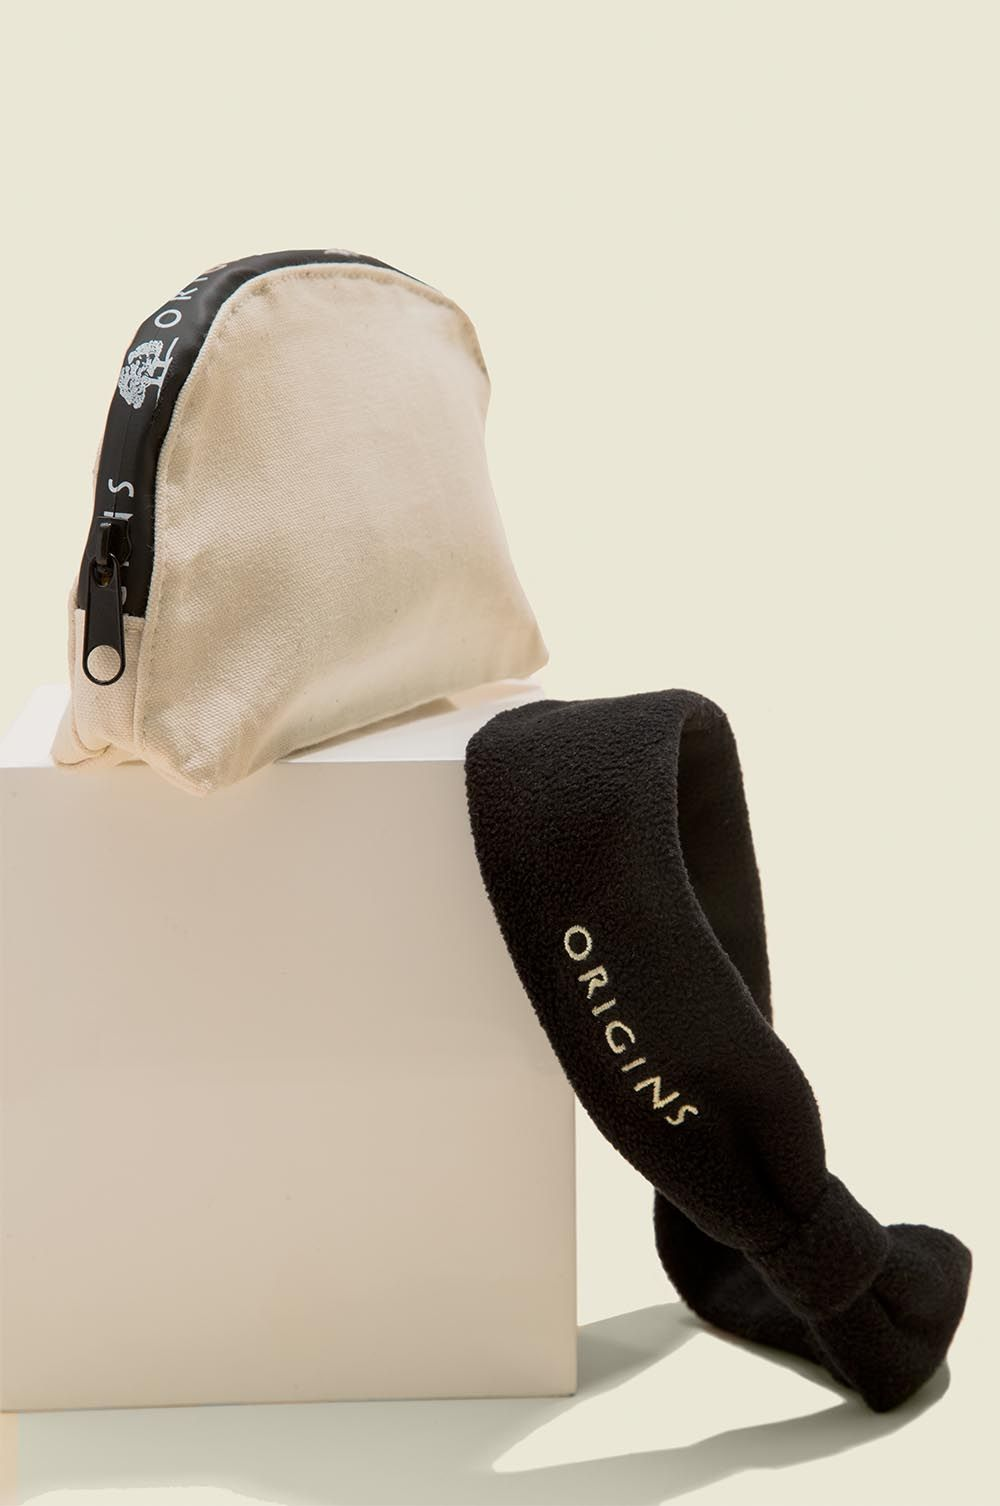 Standing zip pouch with headband